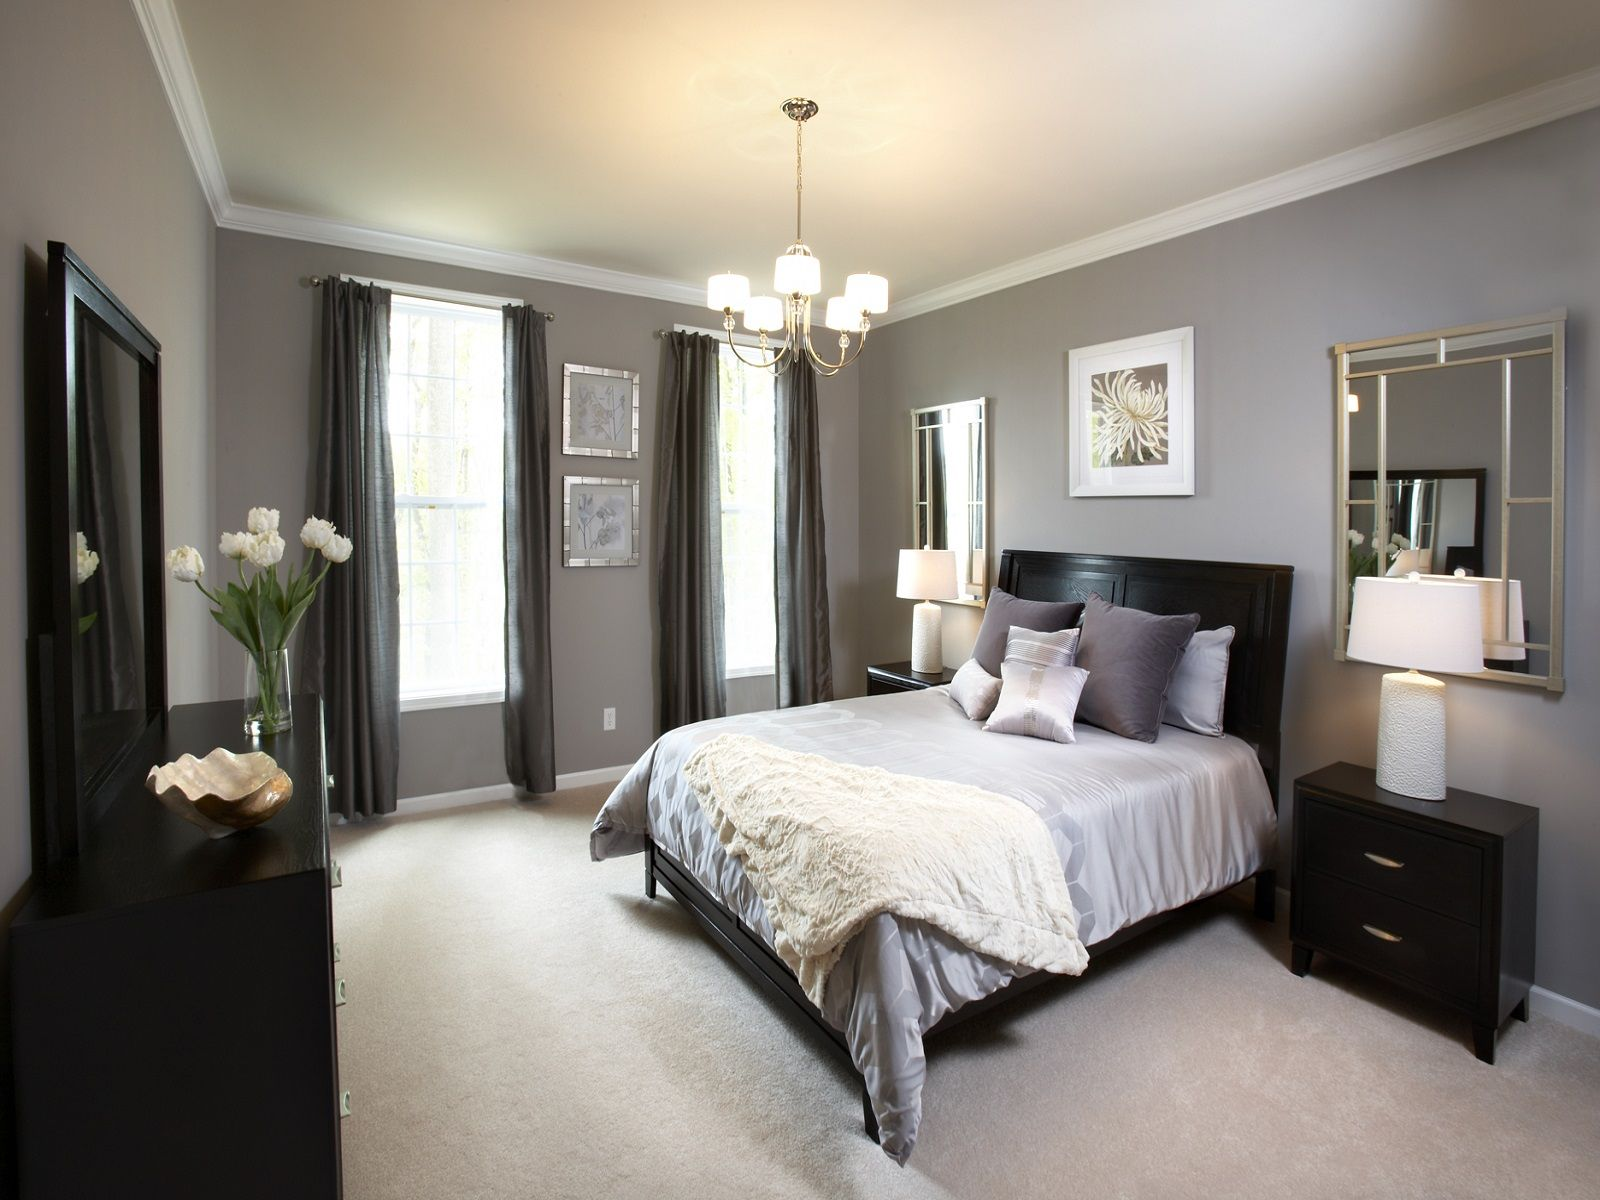 Bedroom paint color ideas for master bedroom buffet with mirror pendant light